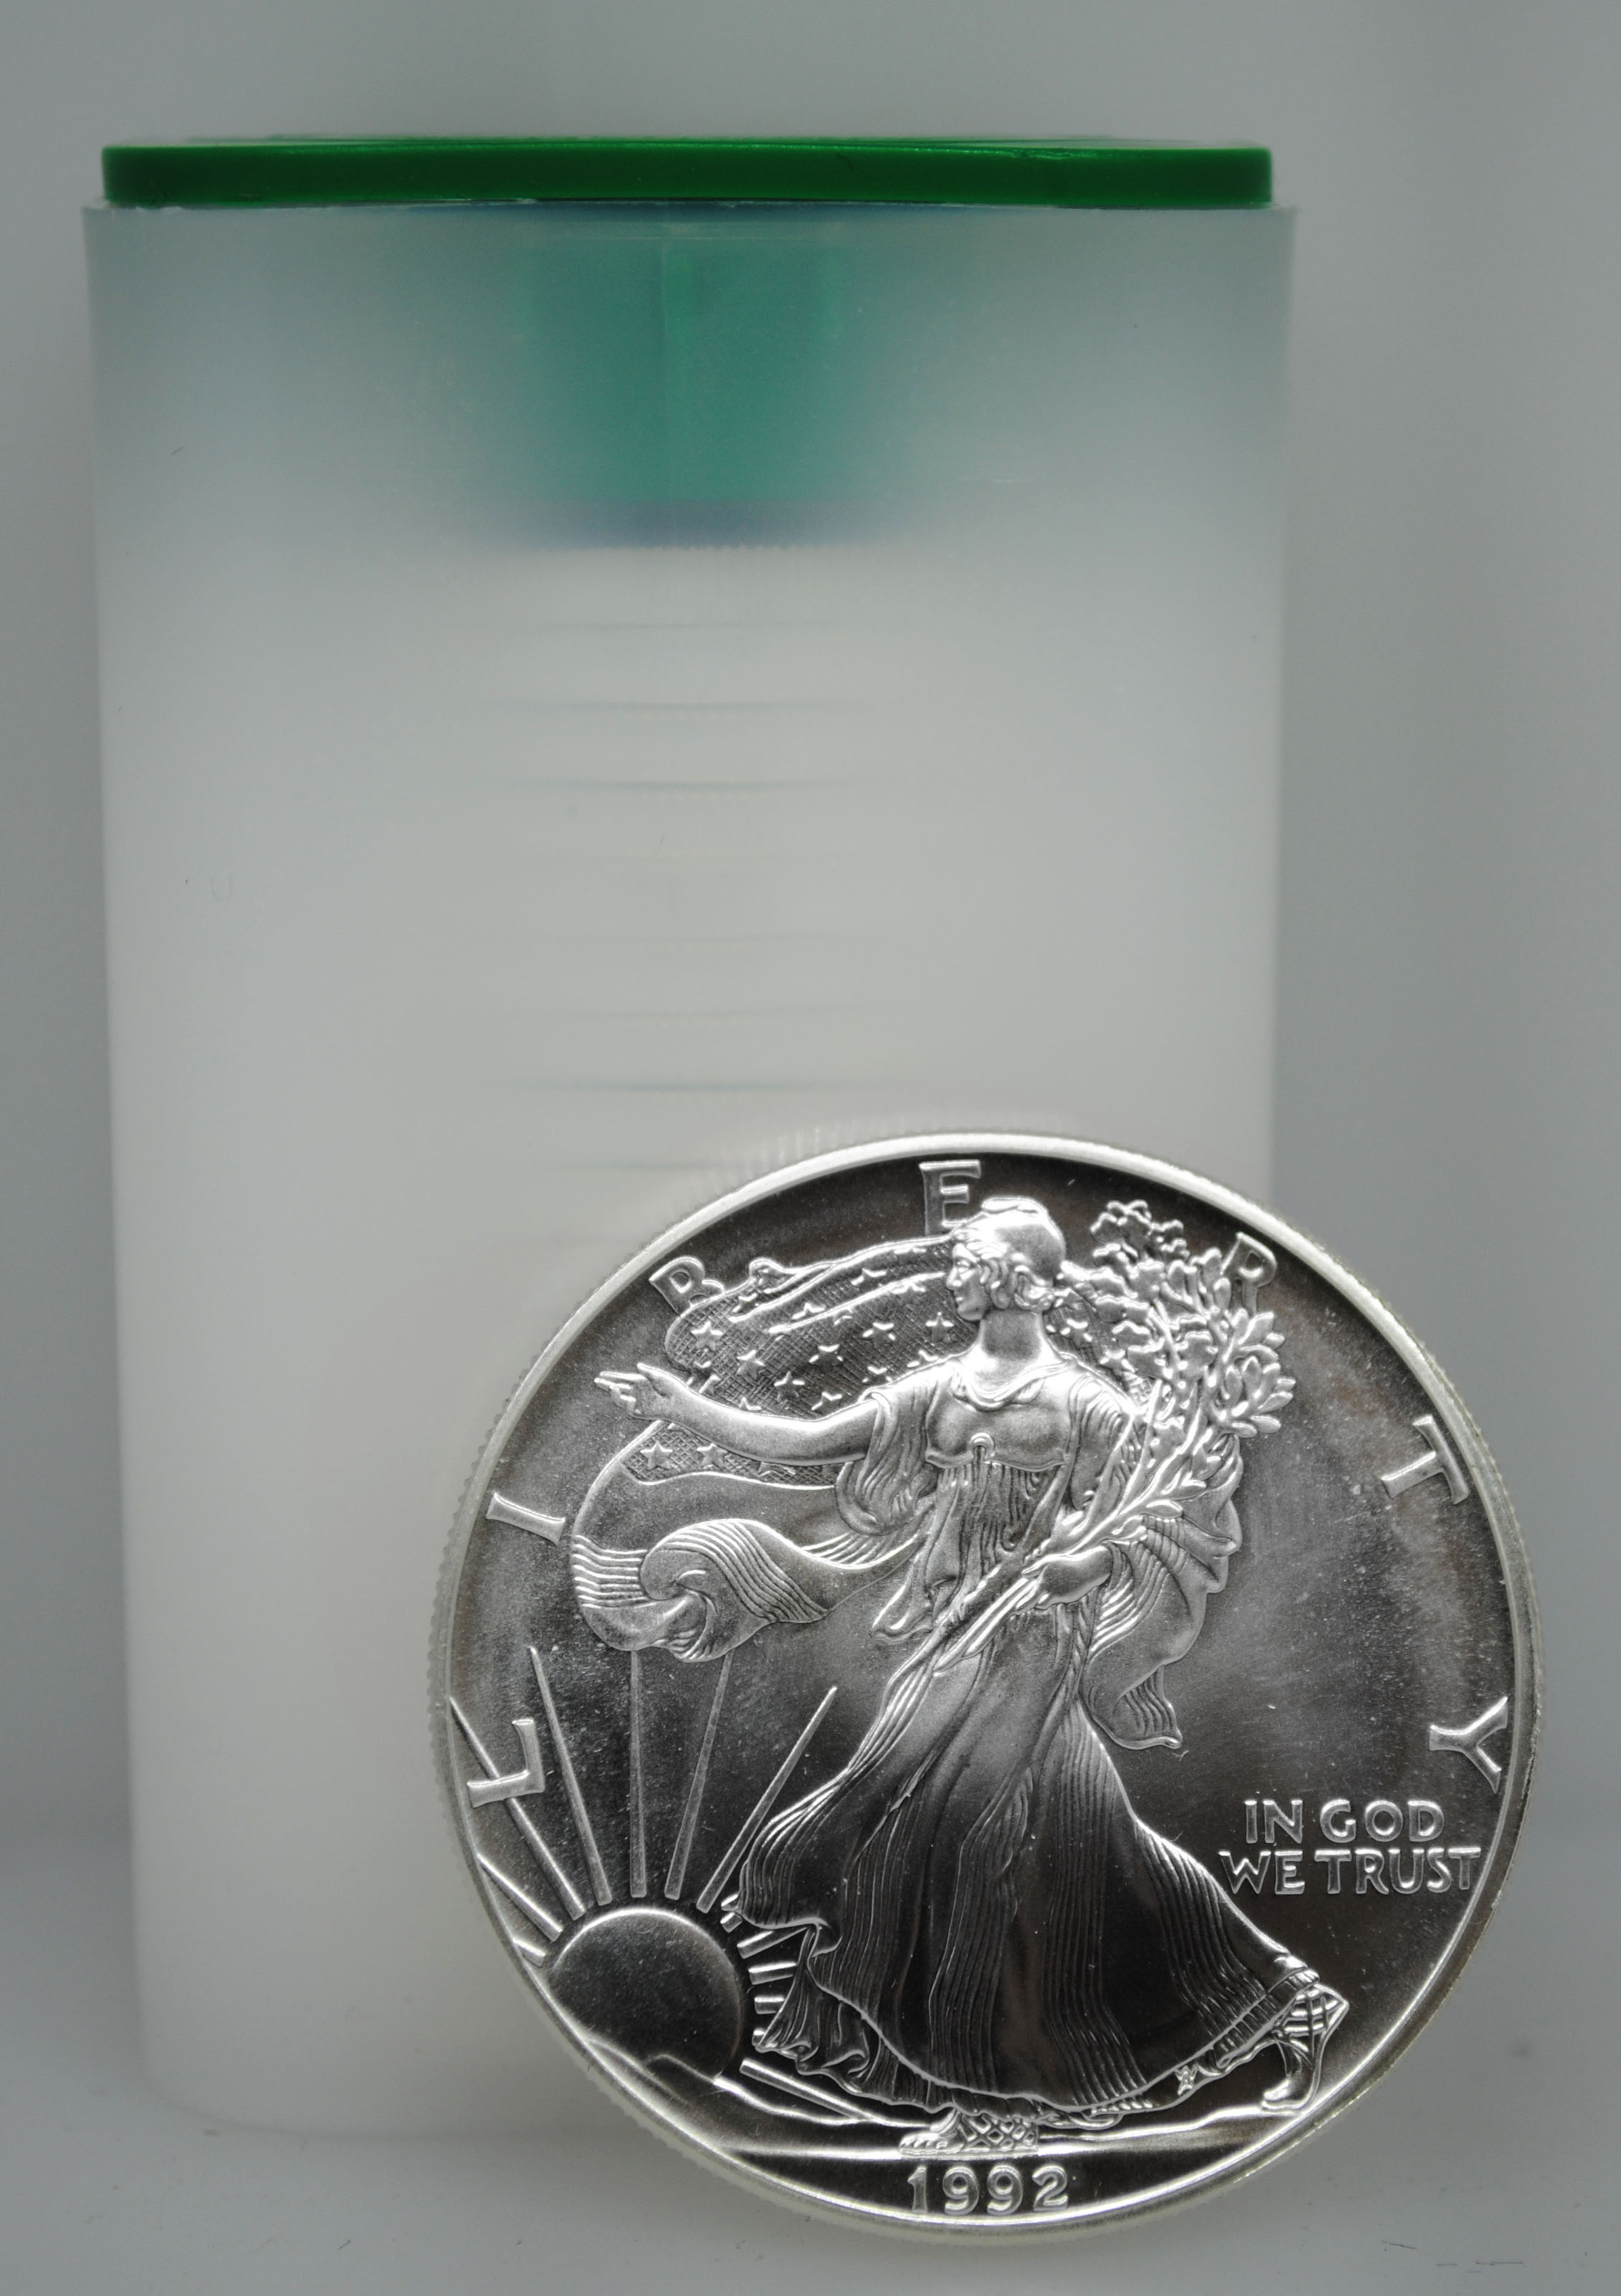 1992 Uncirculated Silver Eagles